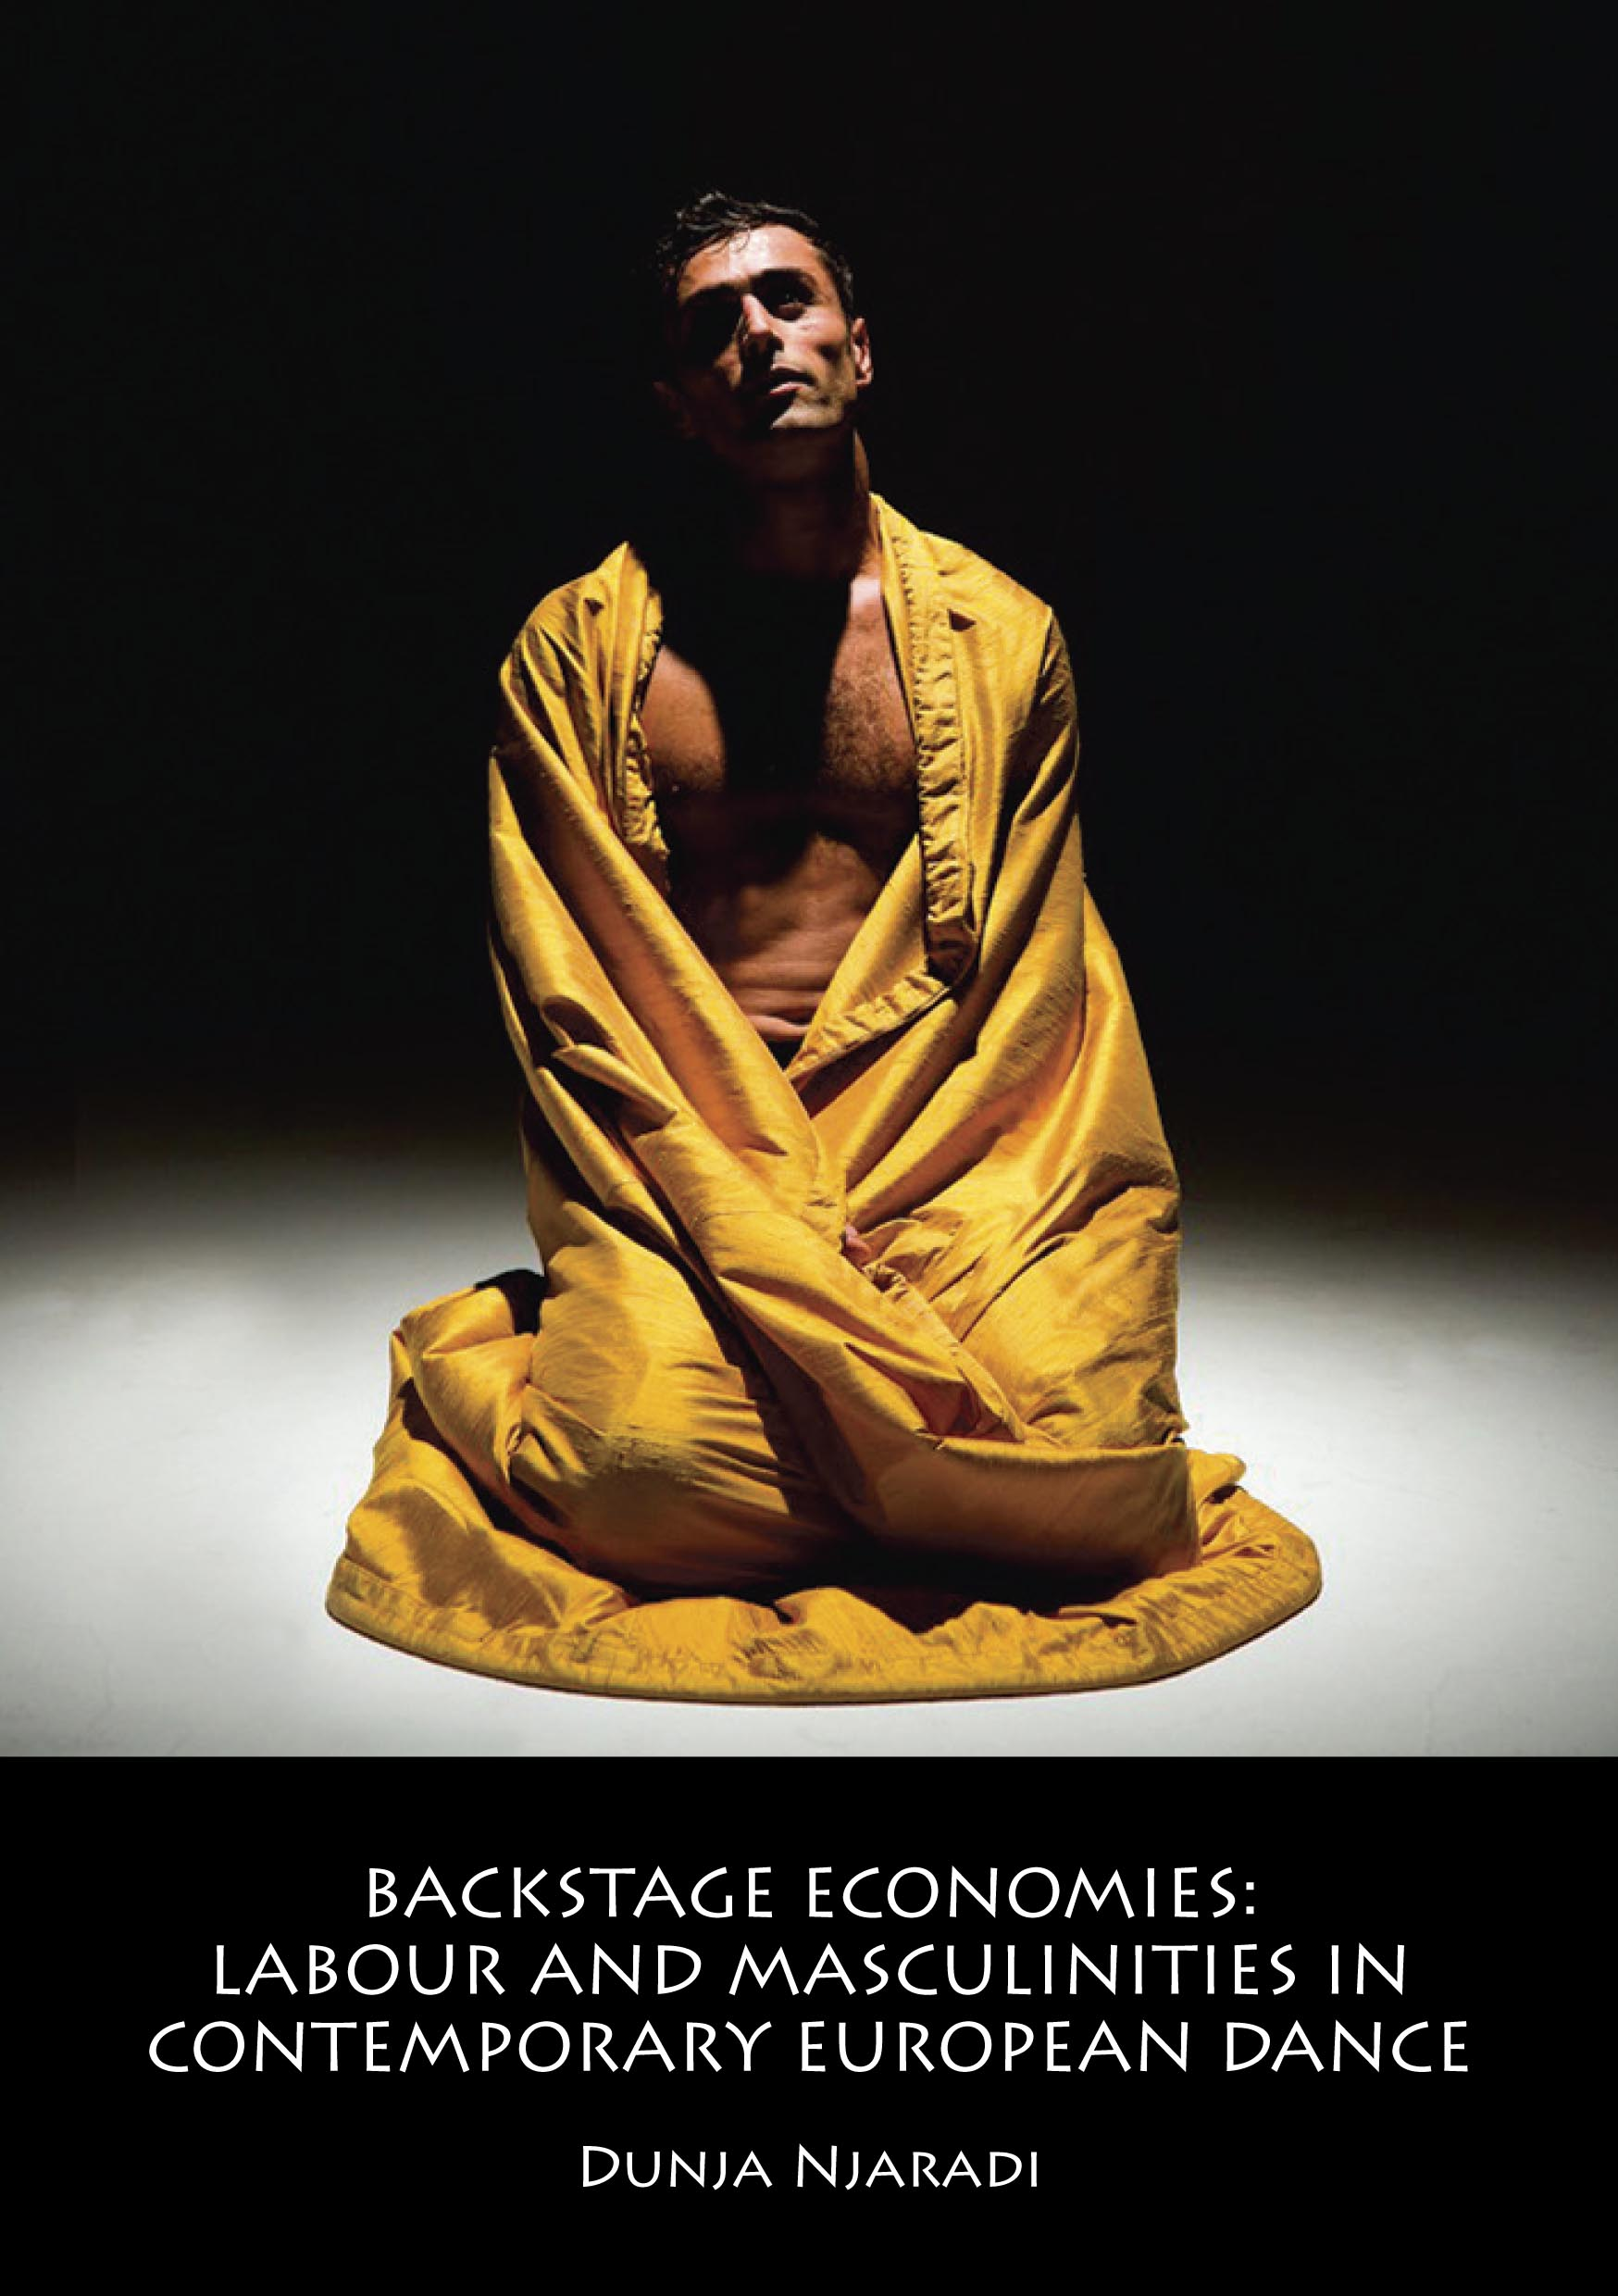 Backstage Economies: Labour and Masculinities in Contemporary European Dance